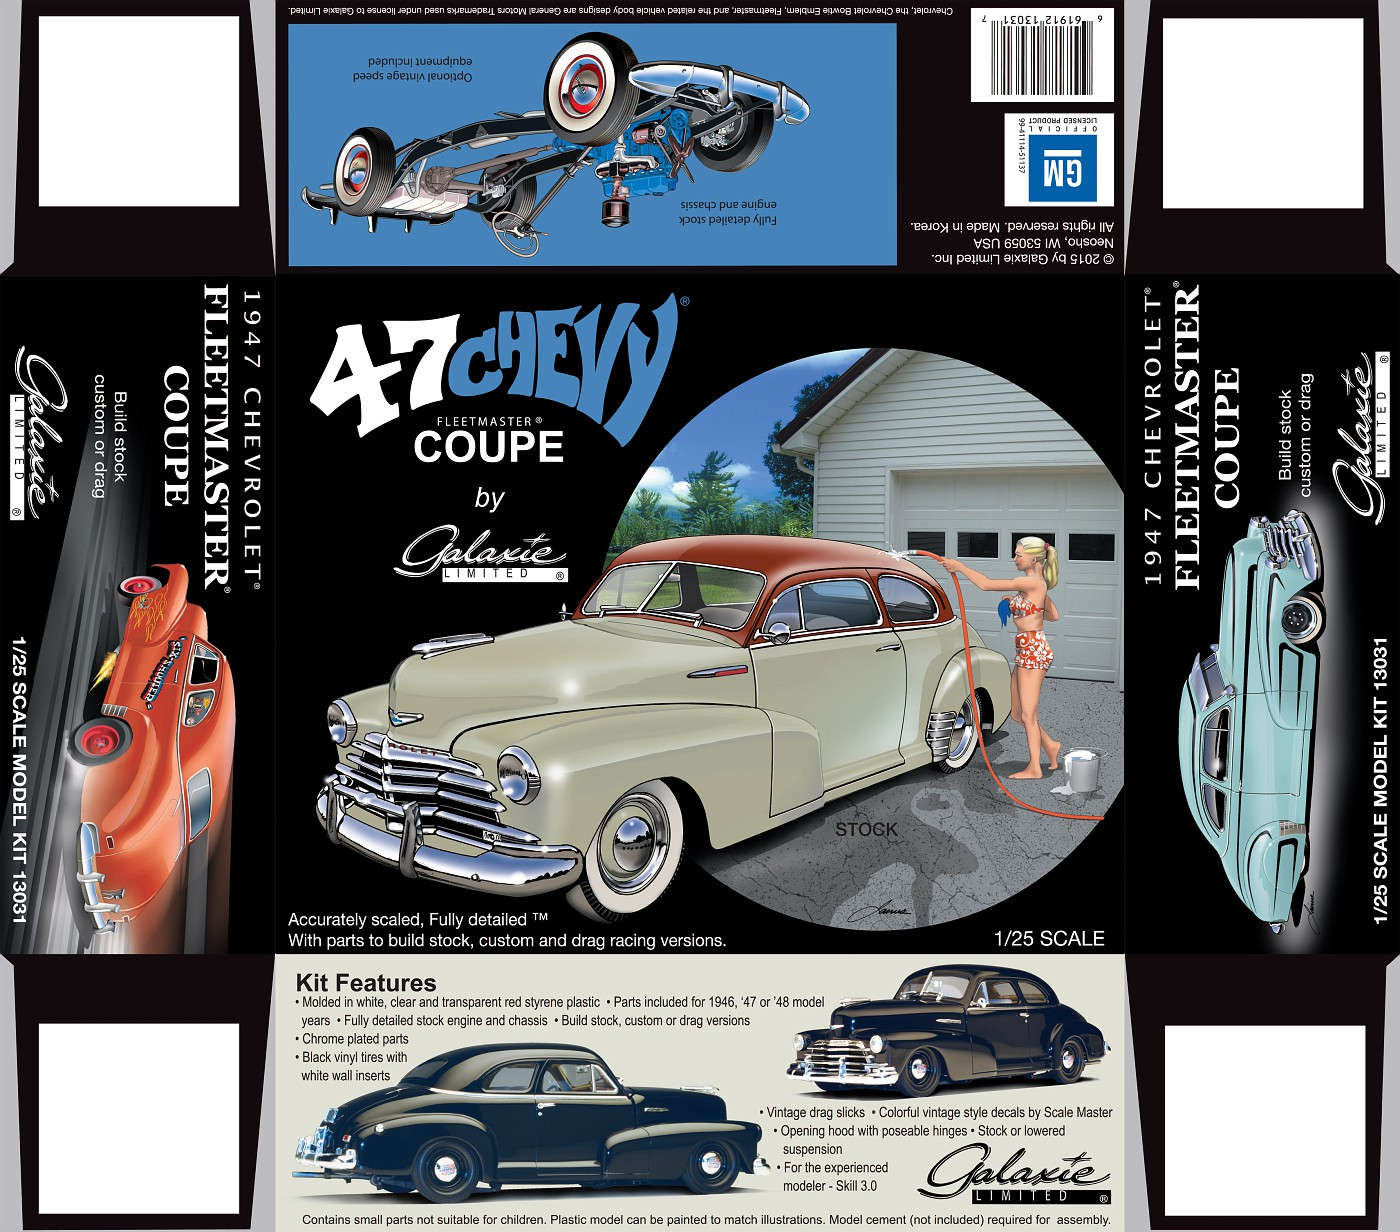 Galaxie_47coupeboxart_final2-vi.jpg